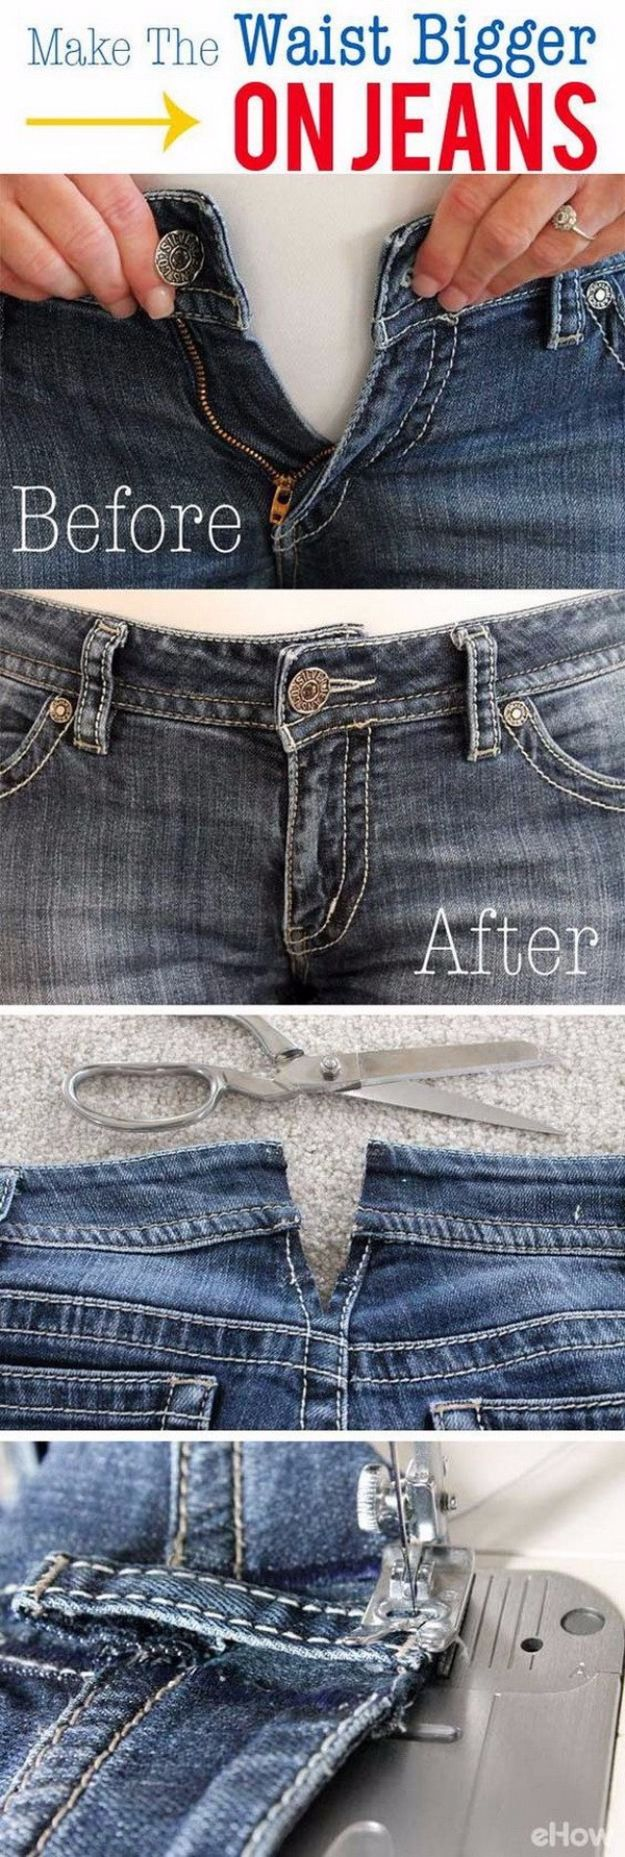 Clothes Hacks - Make The Waist Bigger On Jeans - DIY Fashion Ideas For Women and For Every Girl - Easy No Sew Hacks for Men's Shirts - Washing Machines Tips For Teens - How To Make Jeans For Fat People - Storage Tips and Videos for Room Decor http://diyjoy.com/diy-clothes-hacks